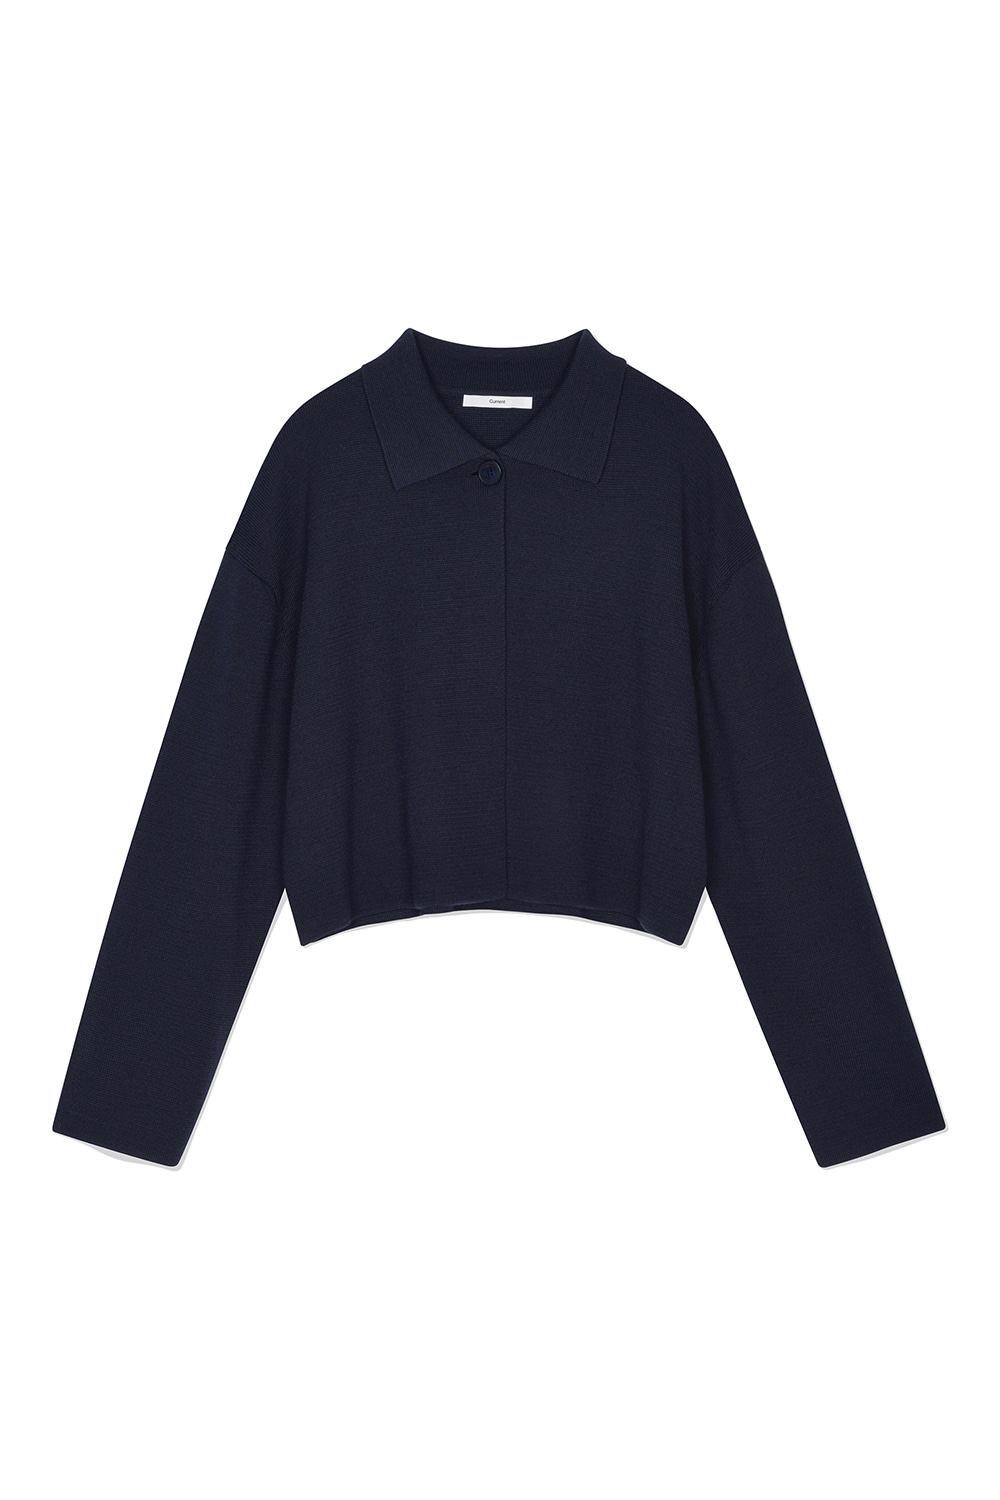 Wool Cropped Knit Cardigan Women JA [Dark Navy]